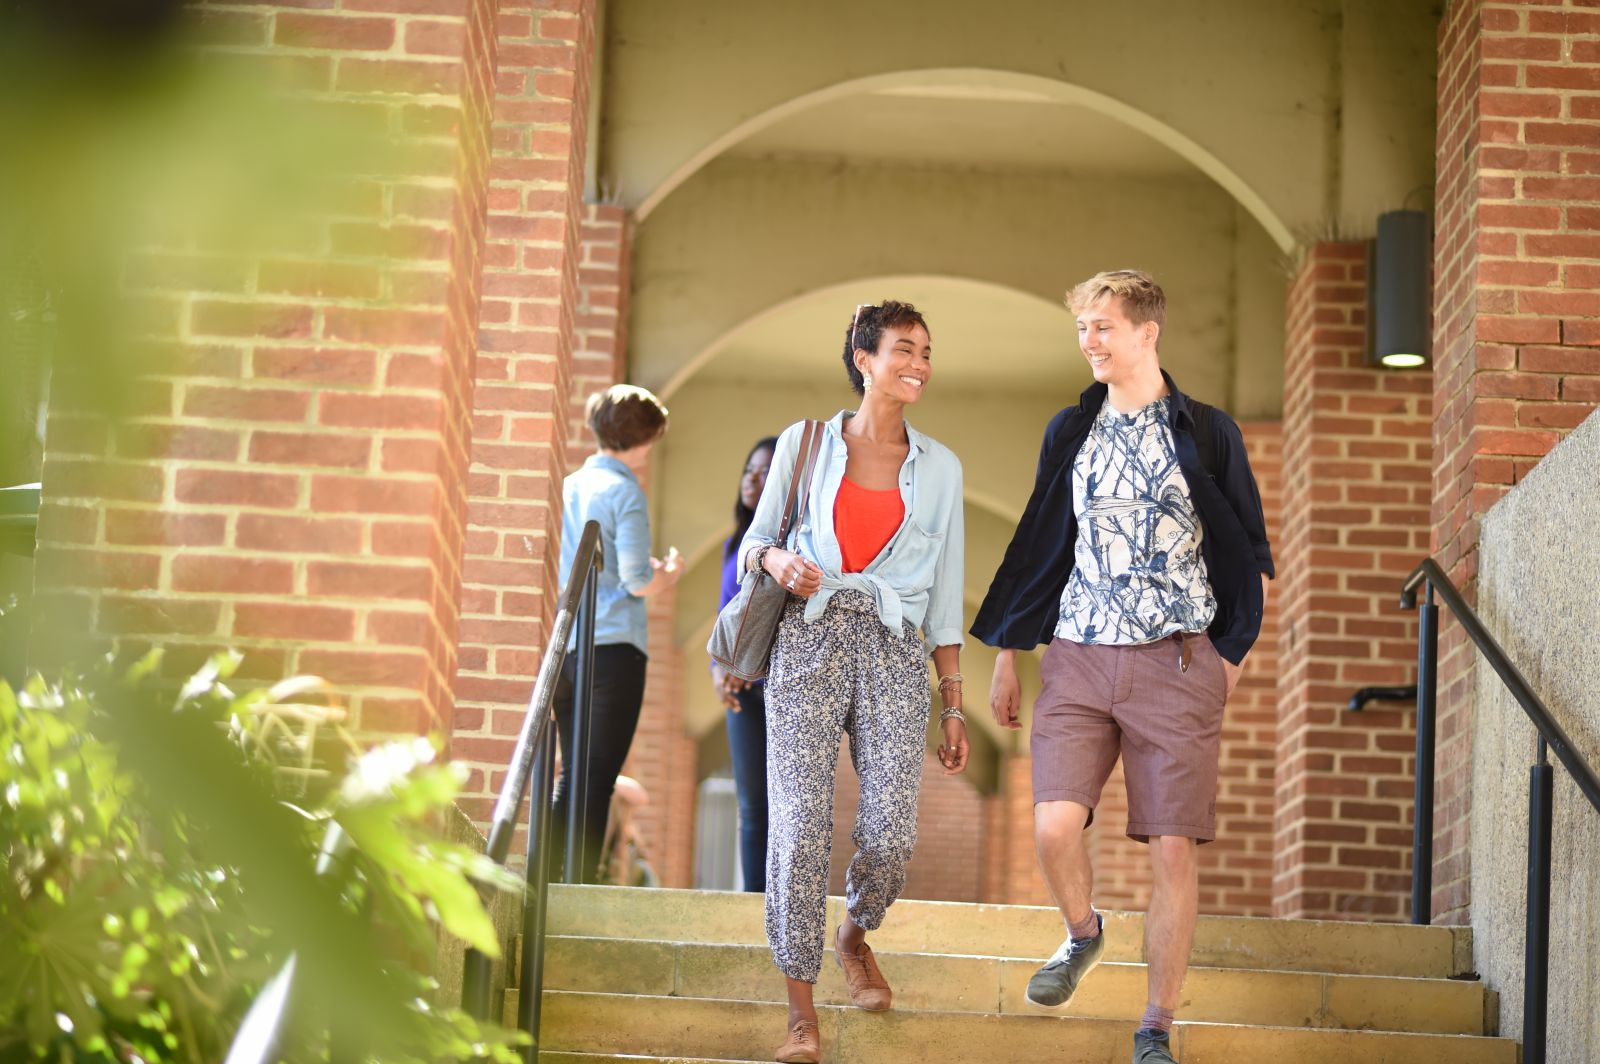 Students walking on campus at the University of Sussex